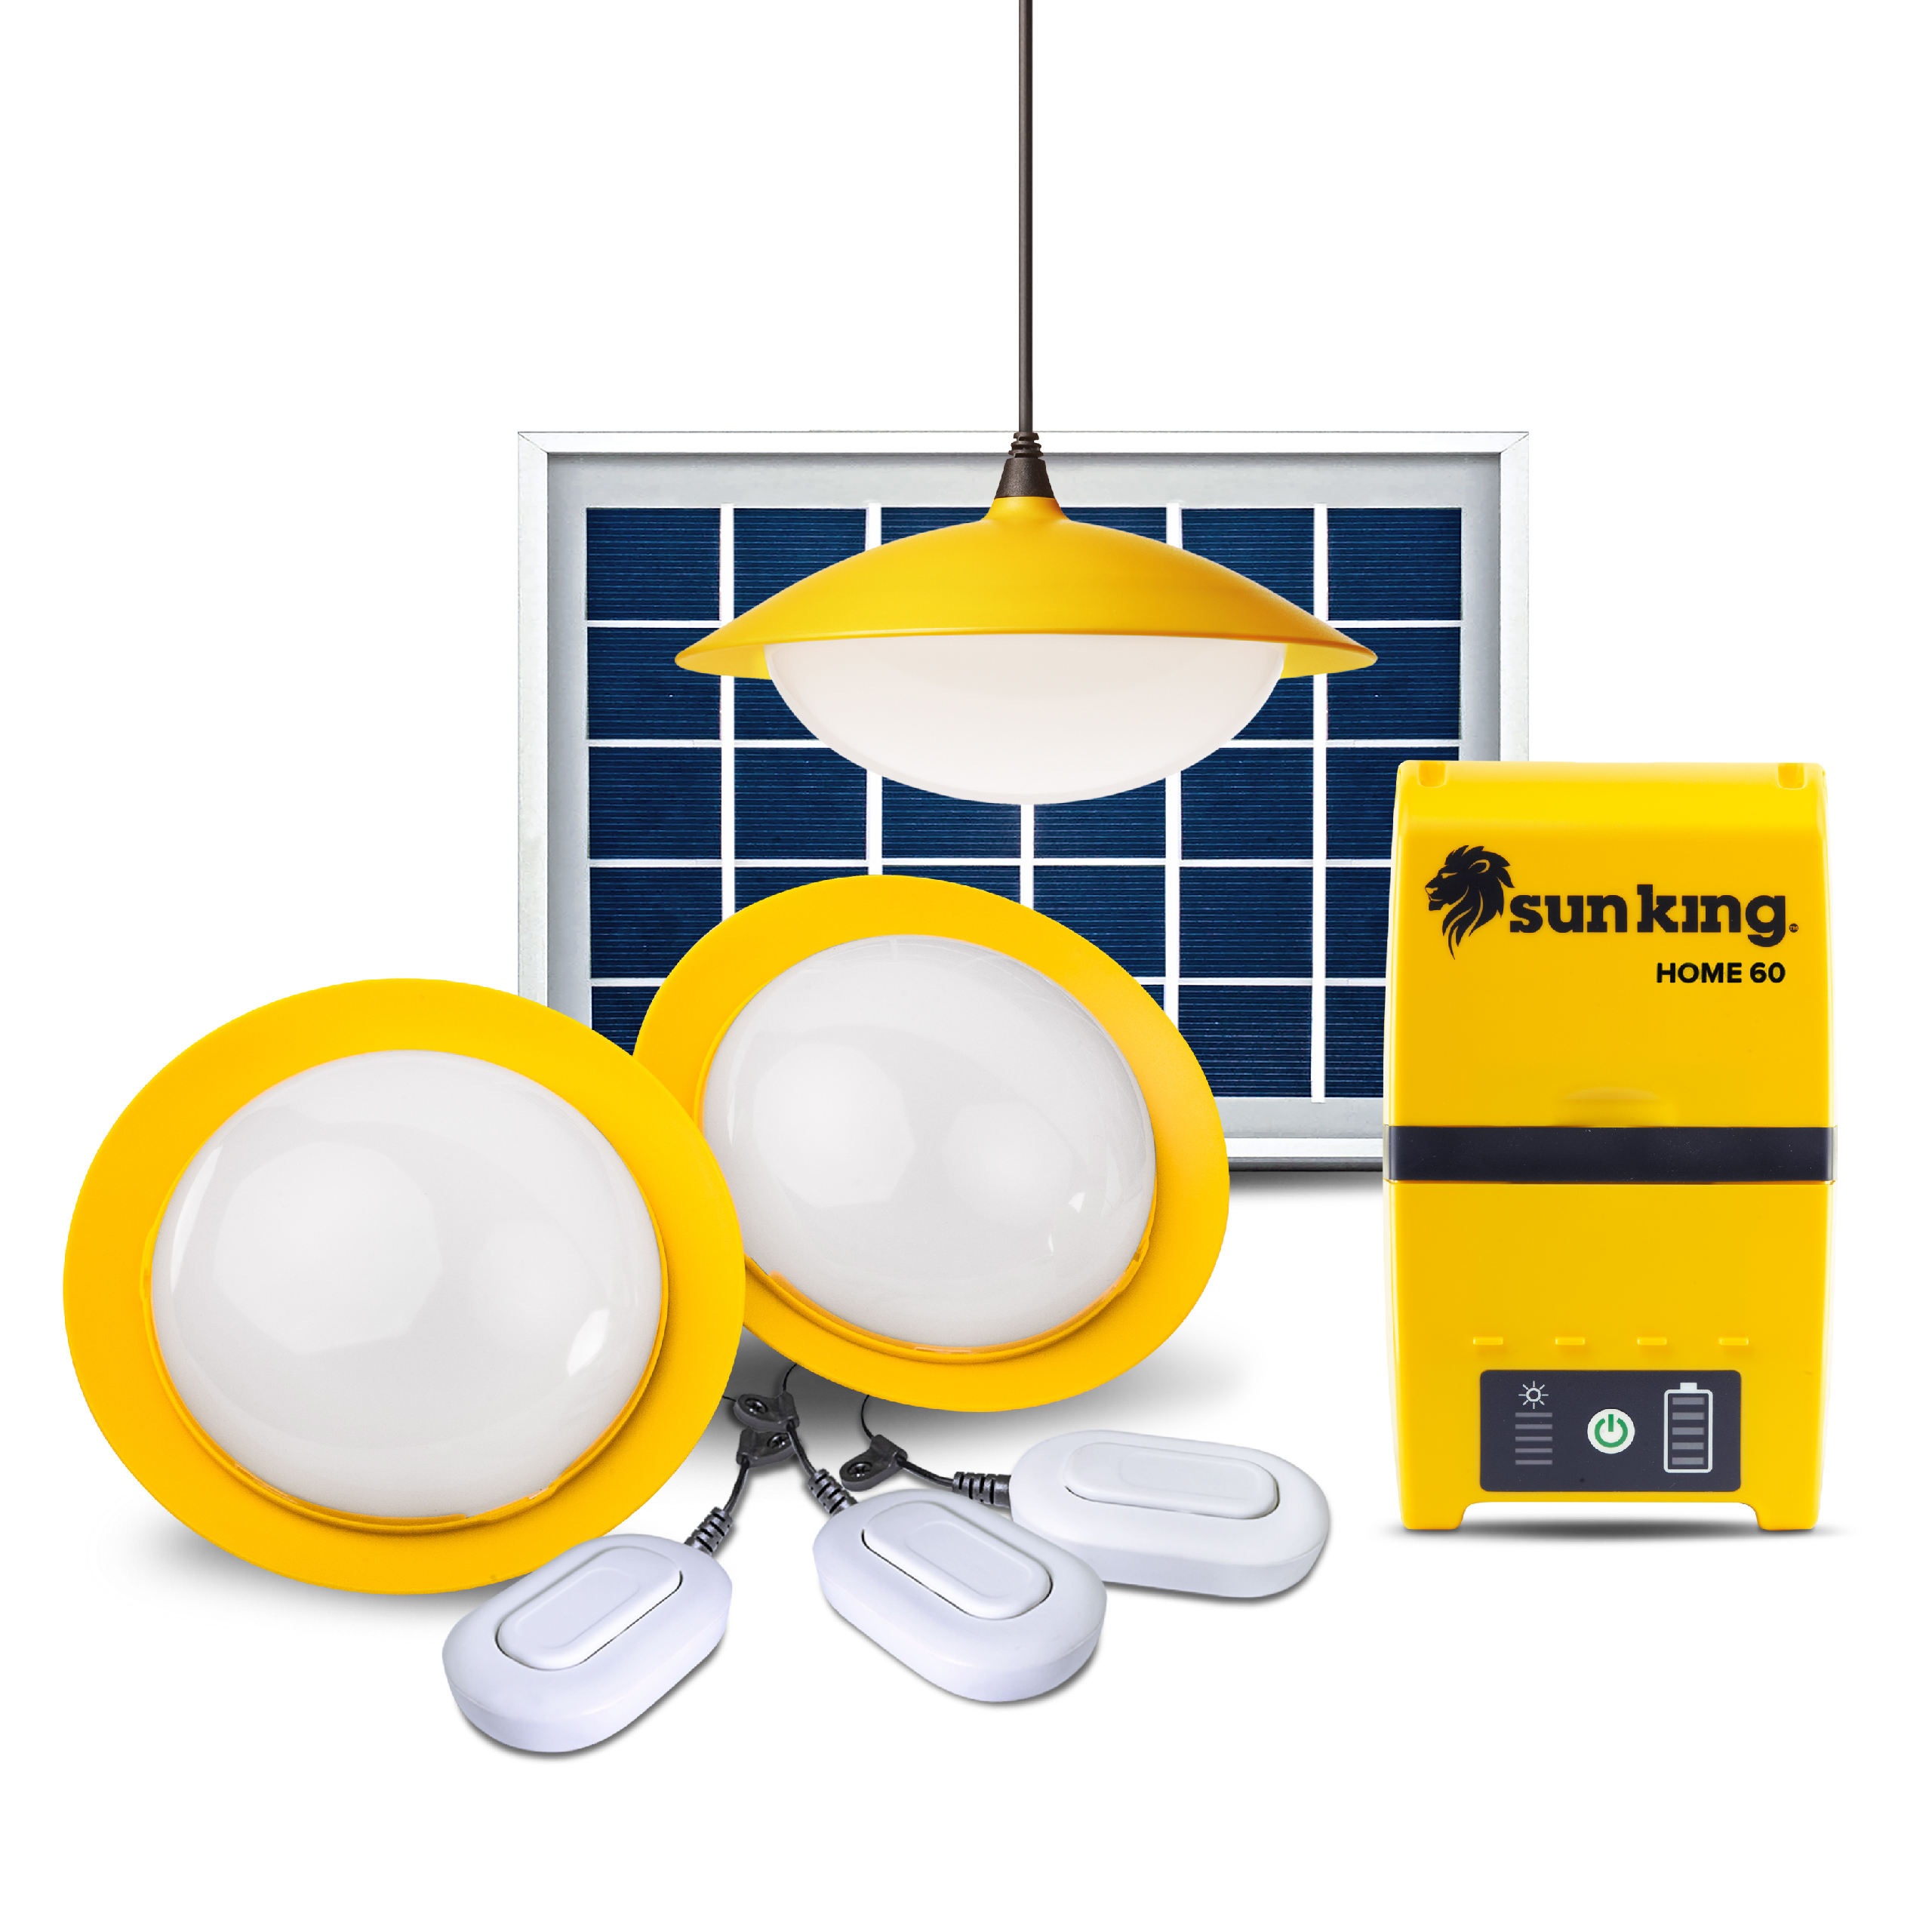 Solar lighting system for indoor with 3 hanging lights